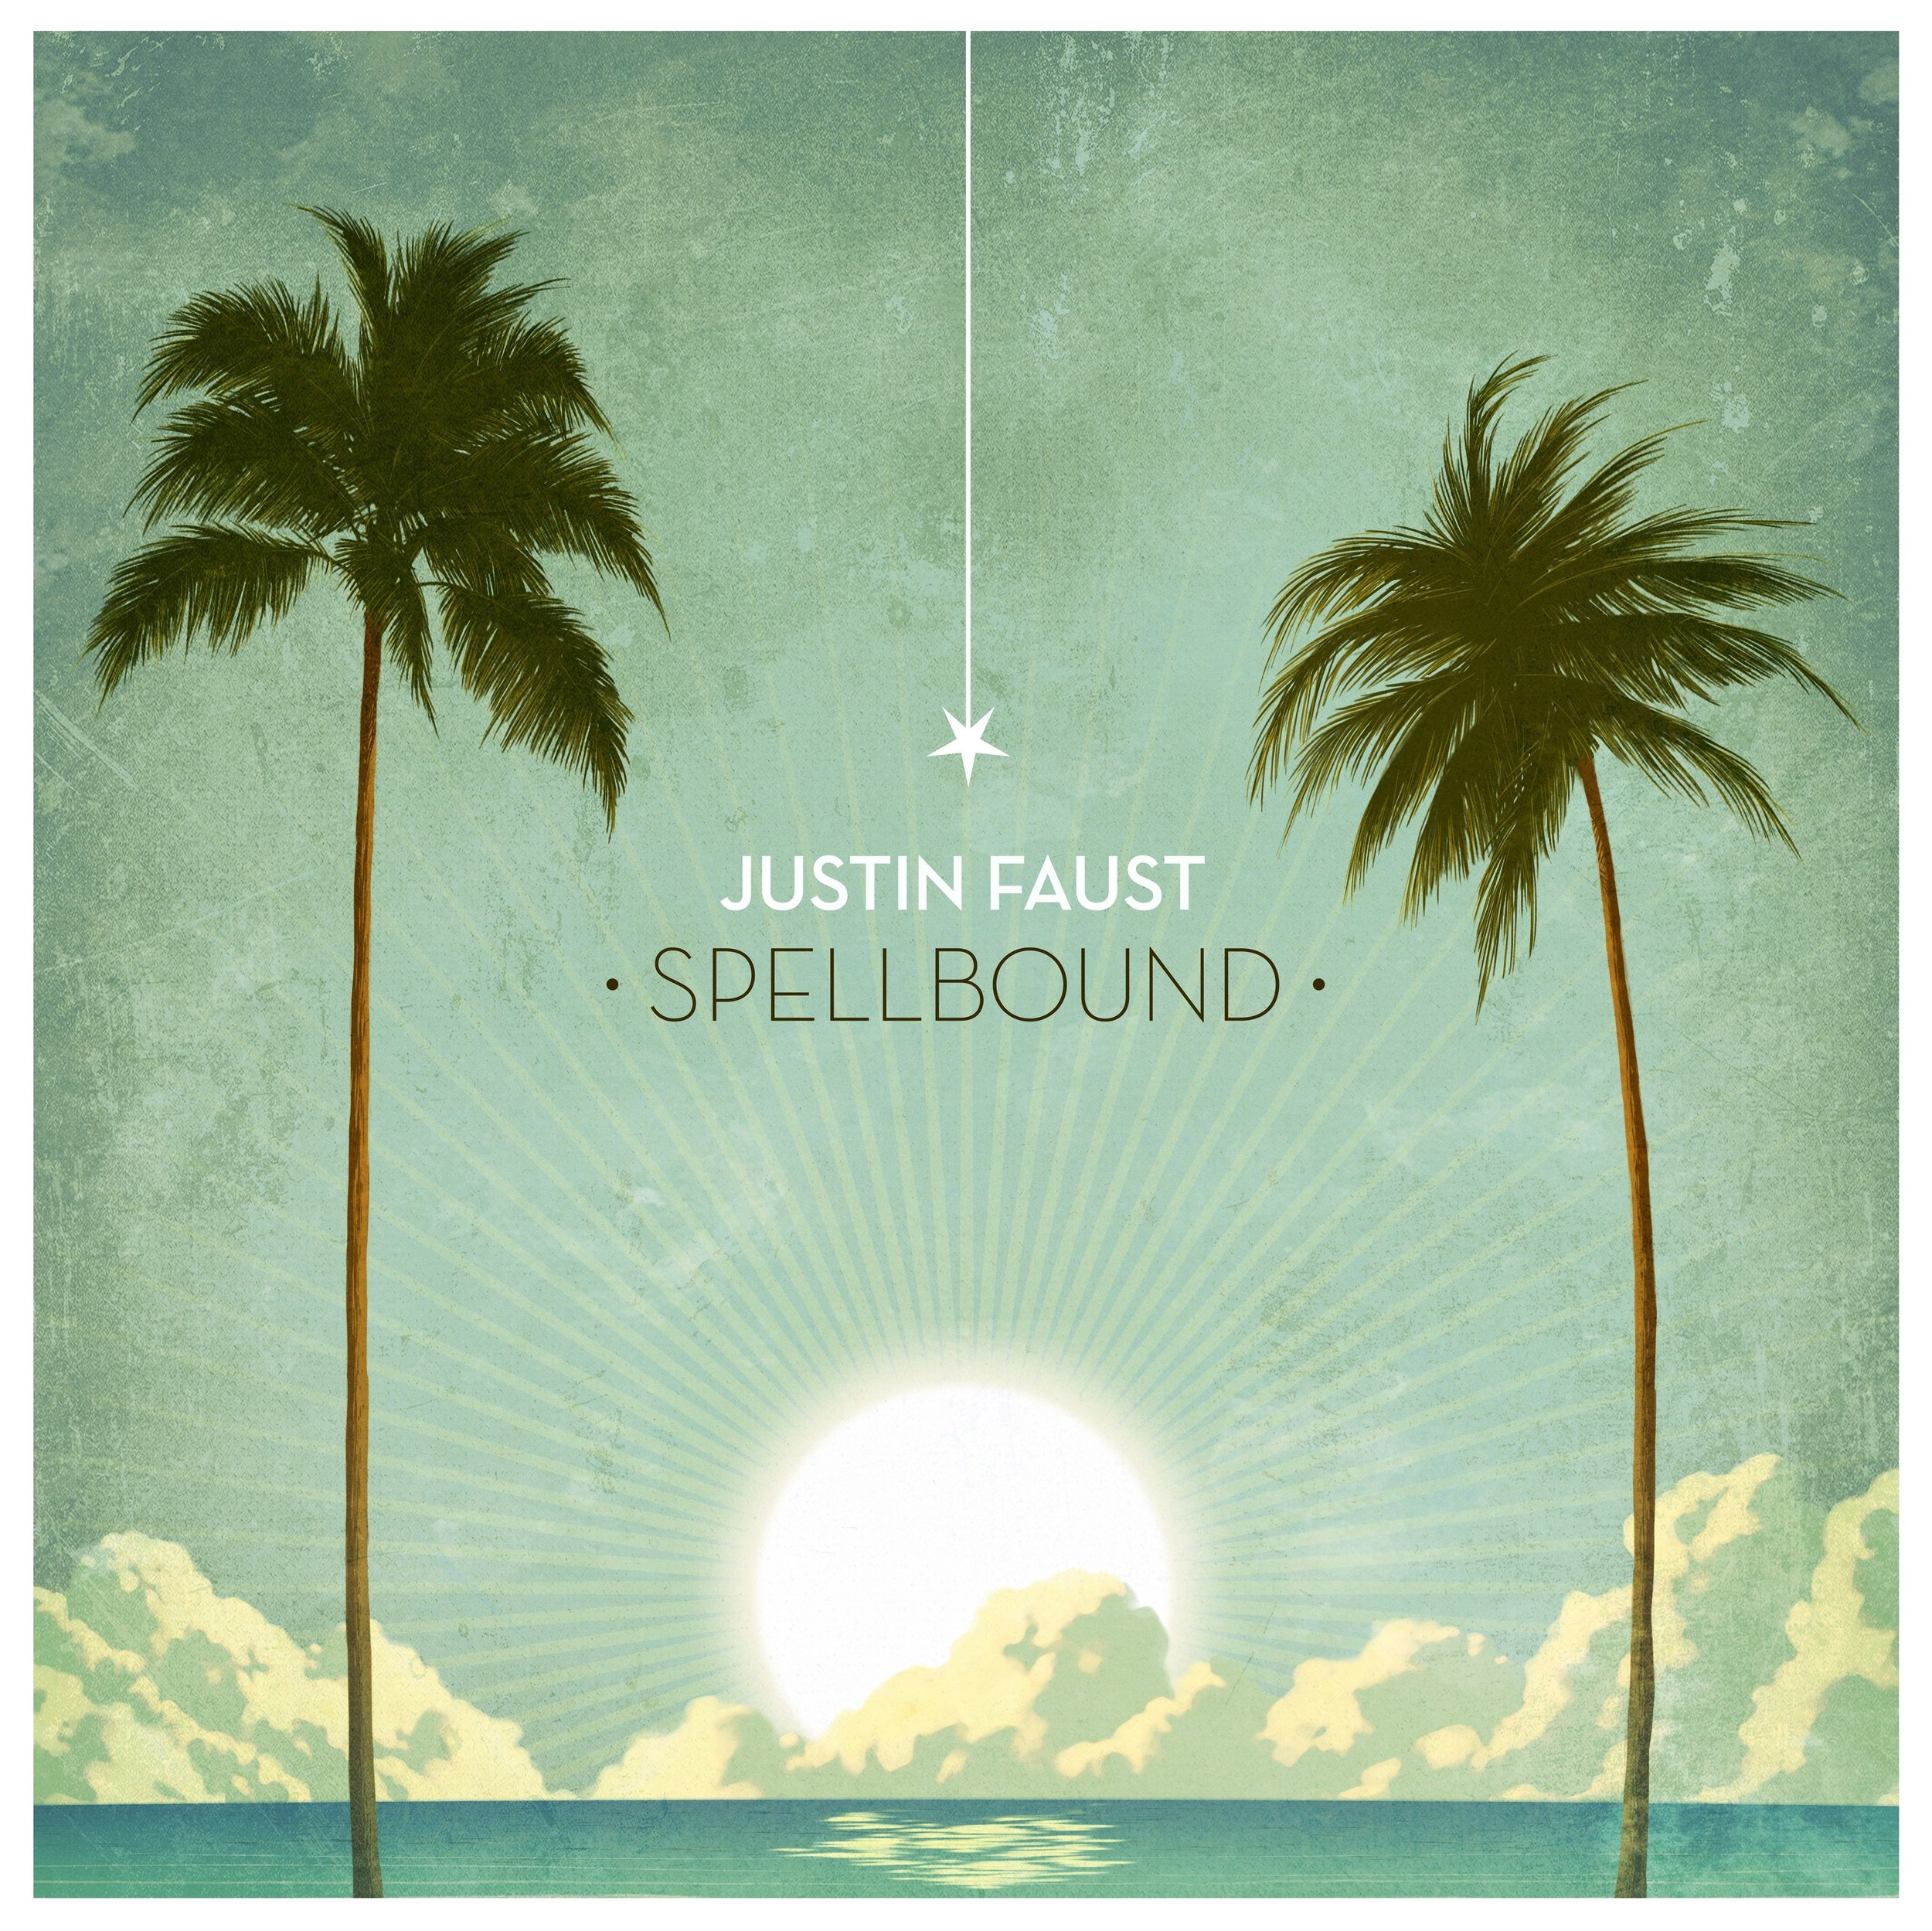 DT042 - Justin Faust - Spellbound (2014) cover.jpg